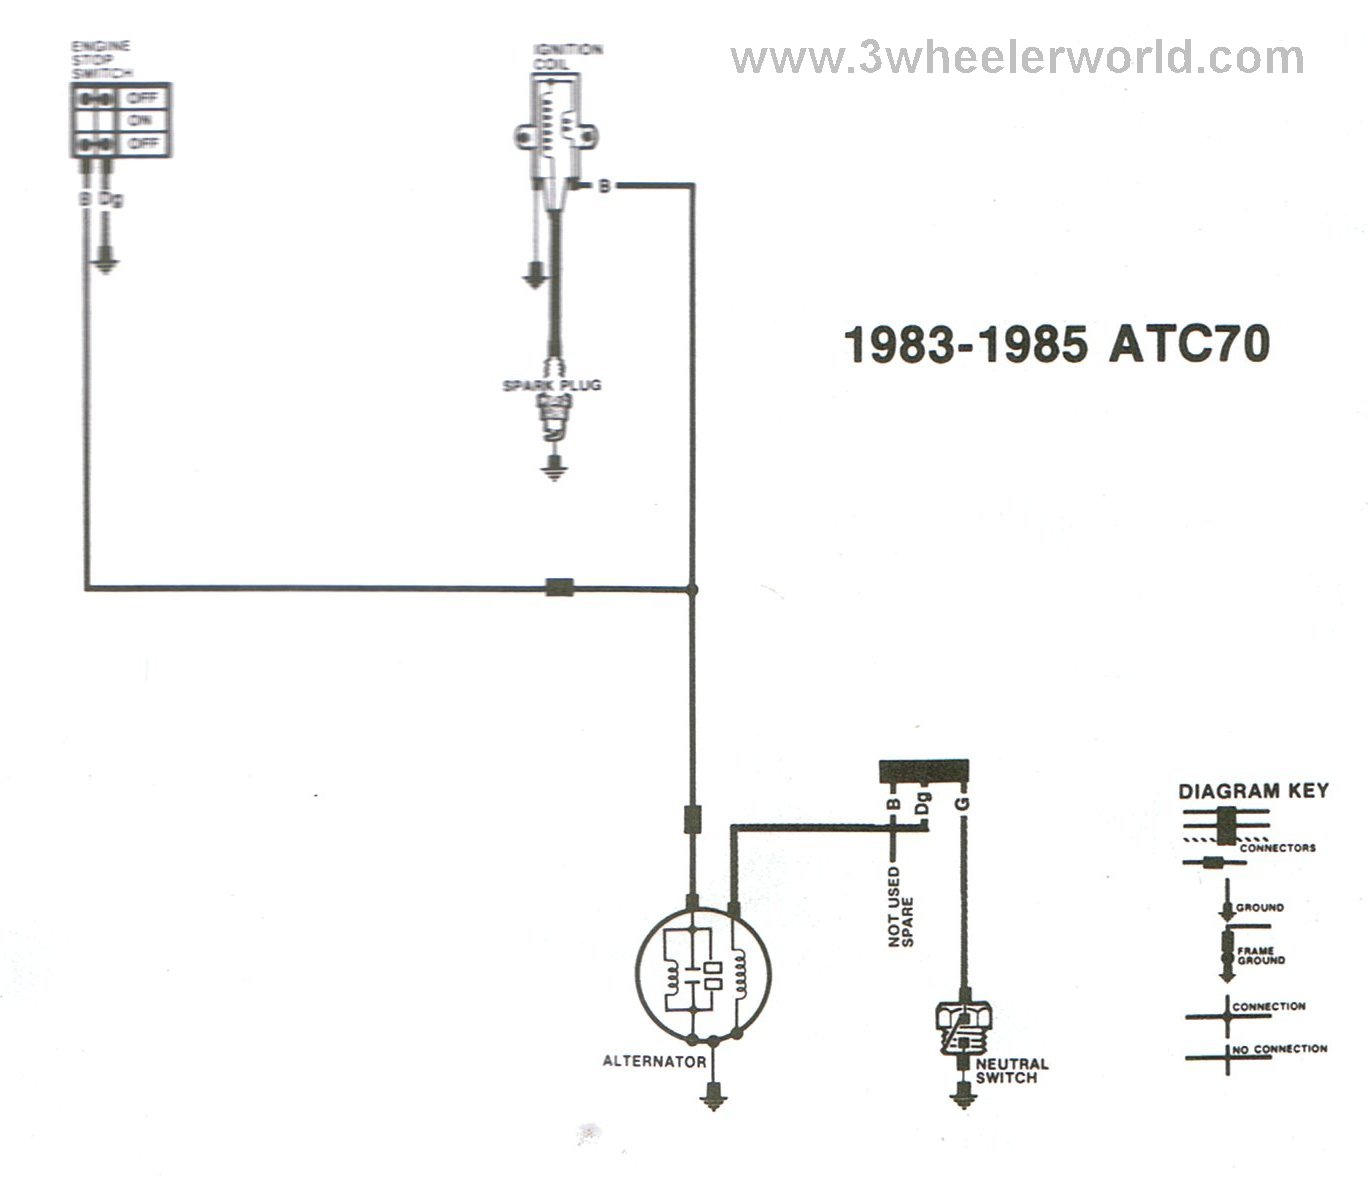 1986 Atc 70 Wiring Diagram - wiring diagrams schematics